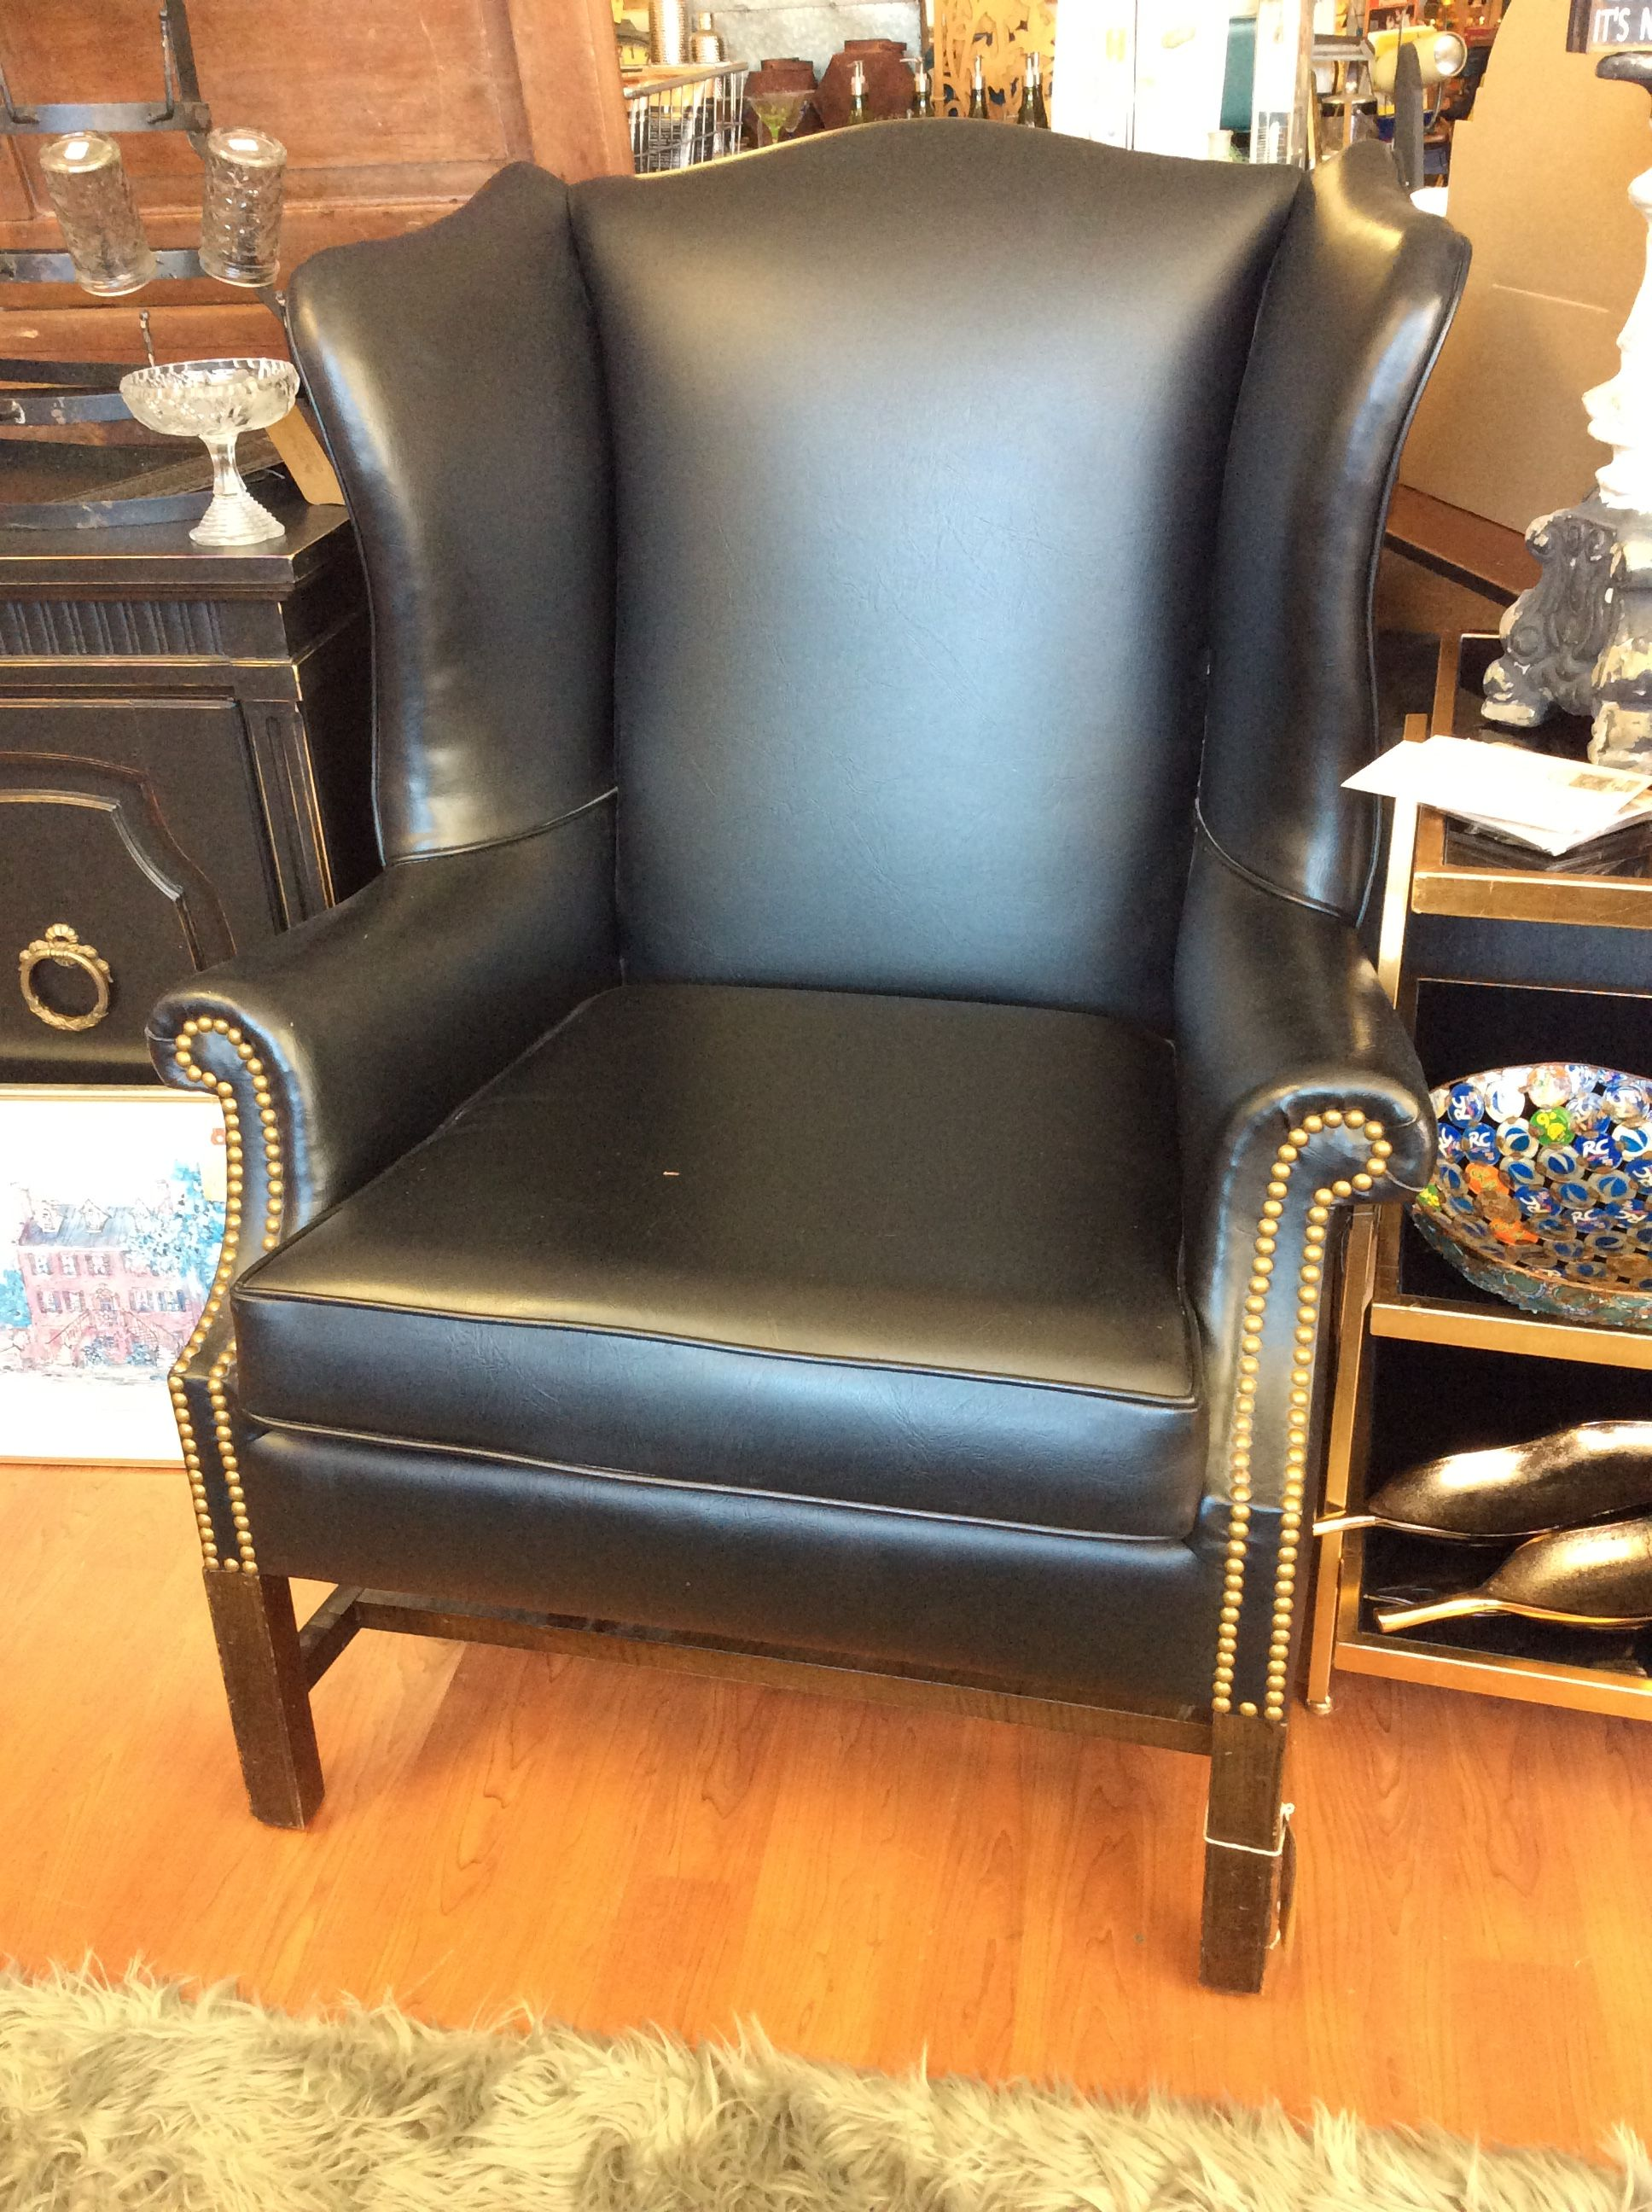 Beautiful black leather chair with gold metal